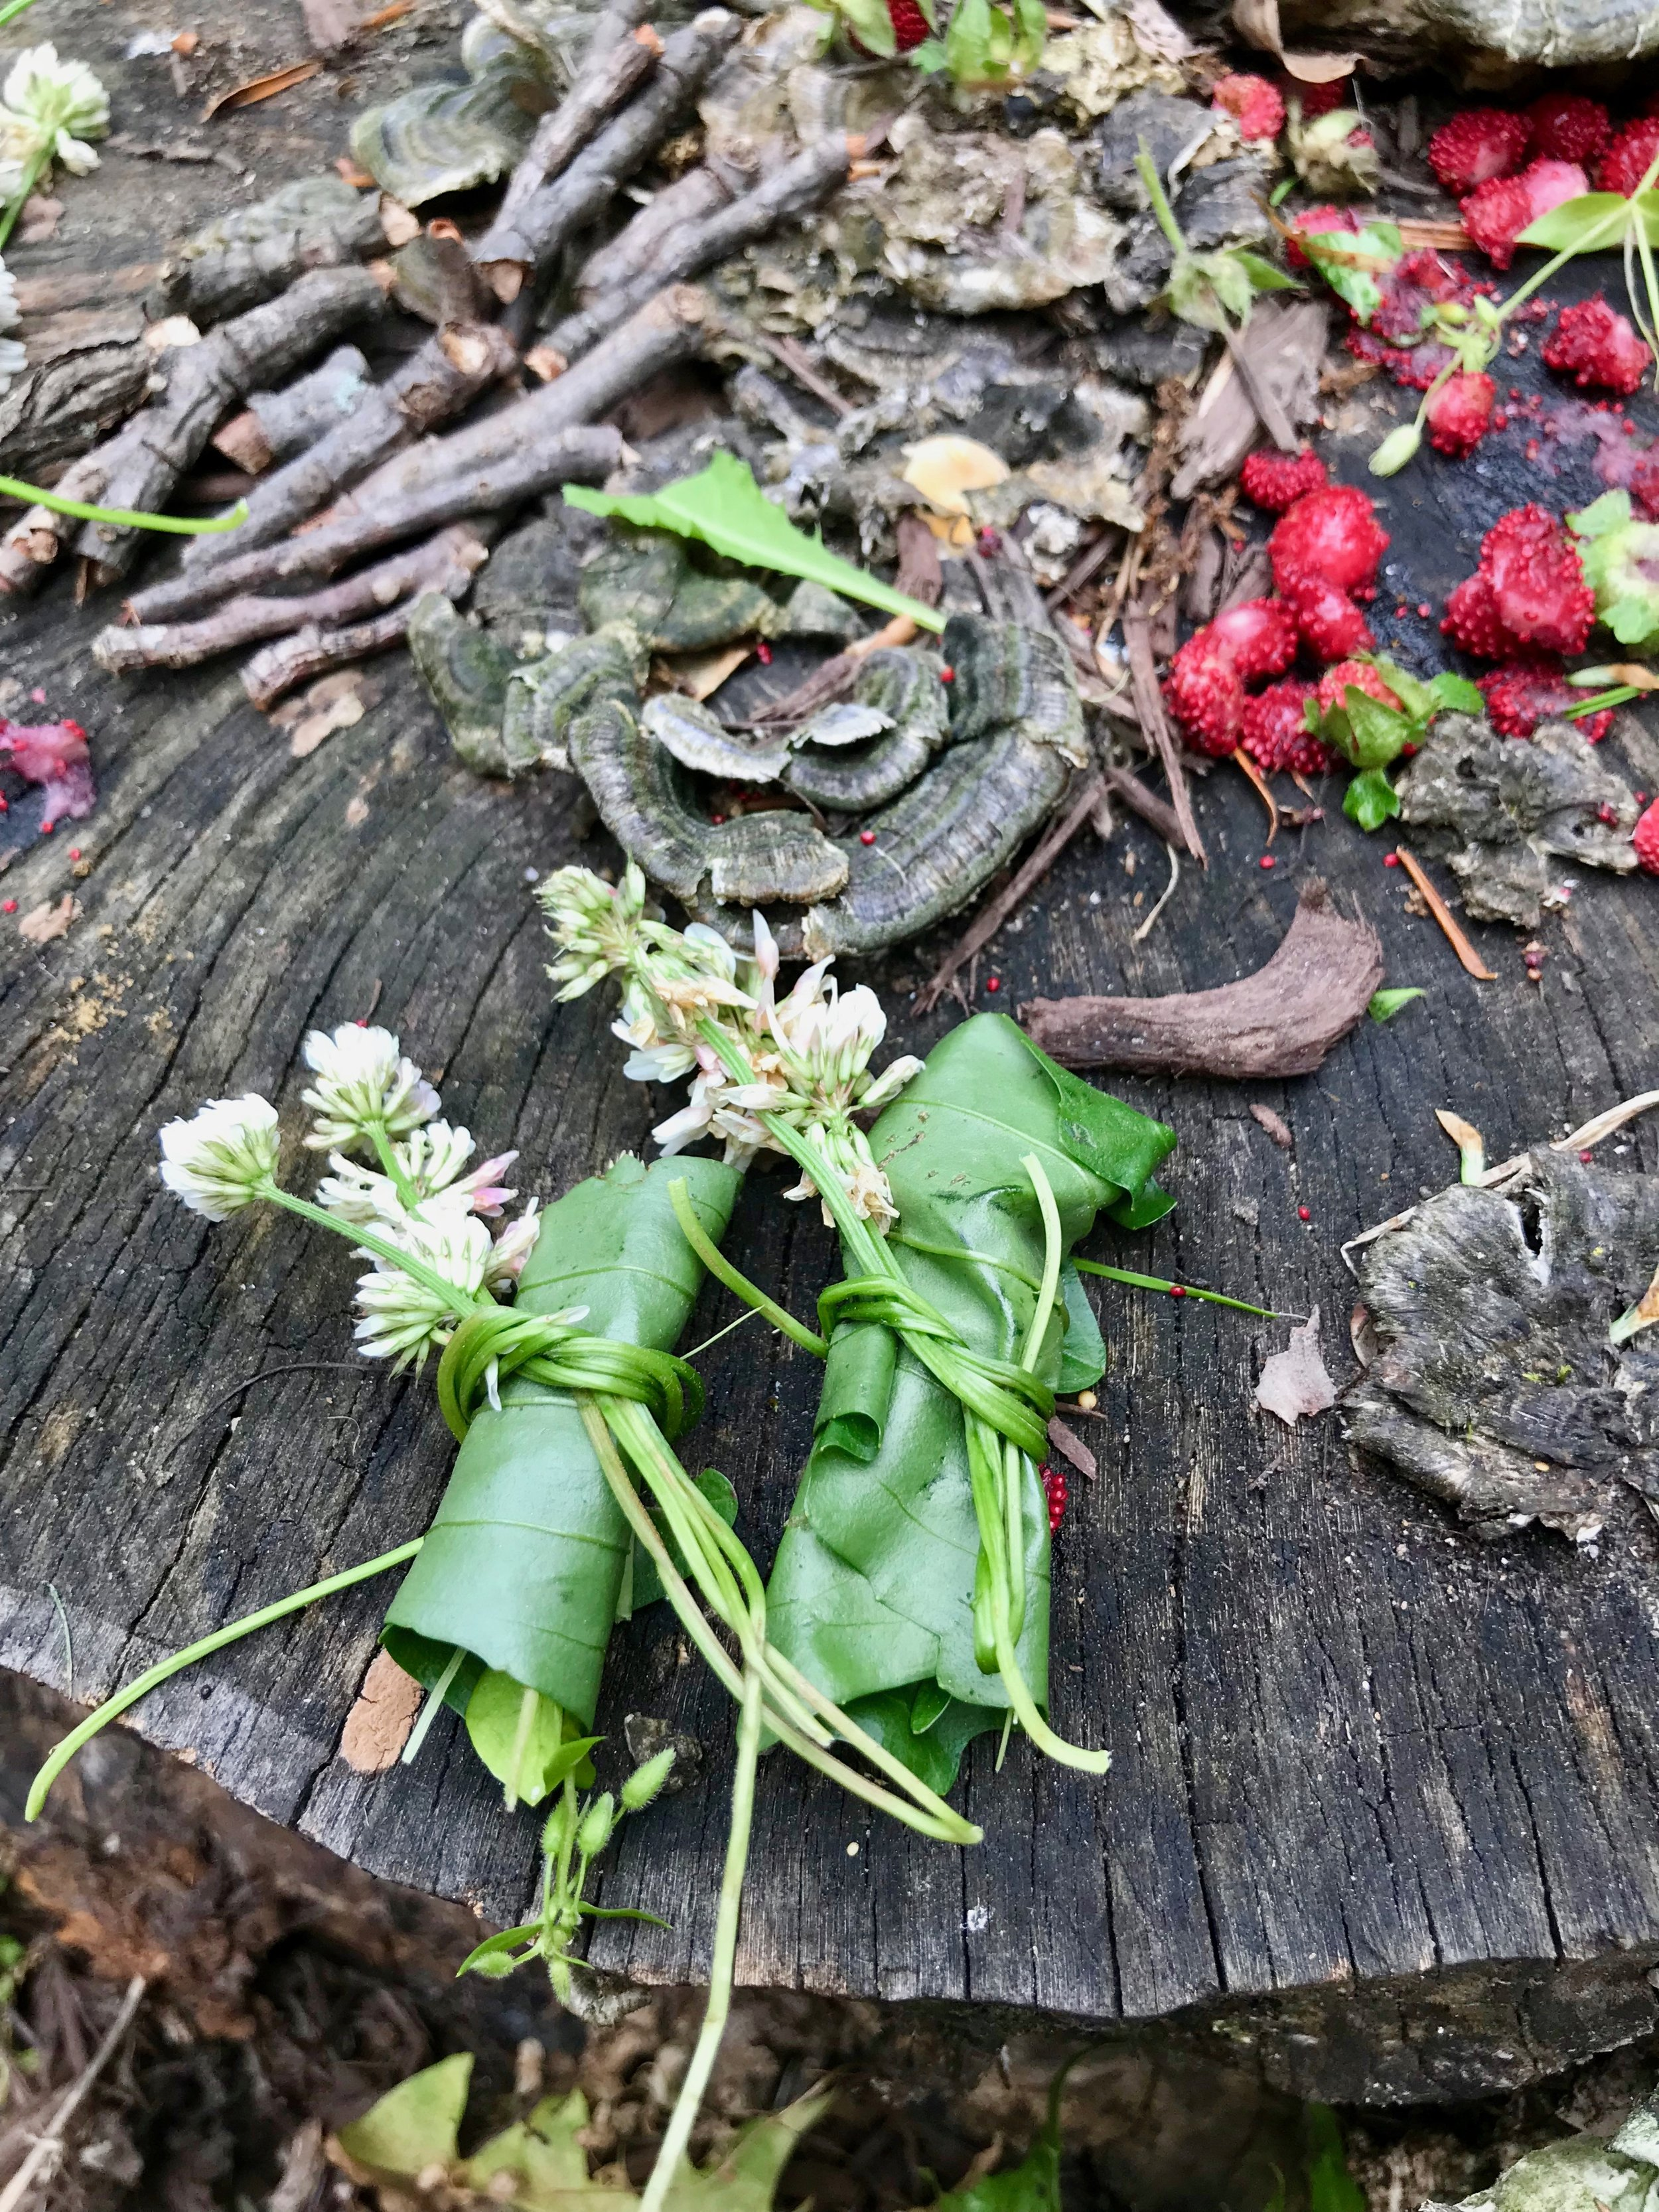 Fairy packages wrapped plantain leaves filled with clover leaves, small stones, and wild strawberries and tied with clover flowers.